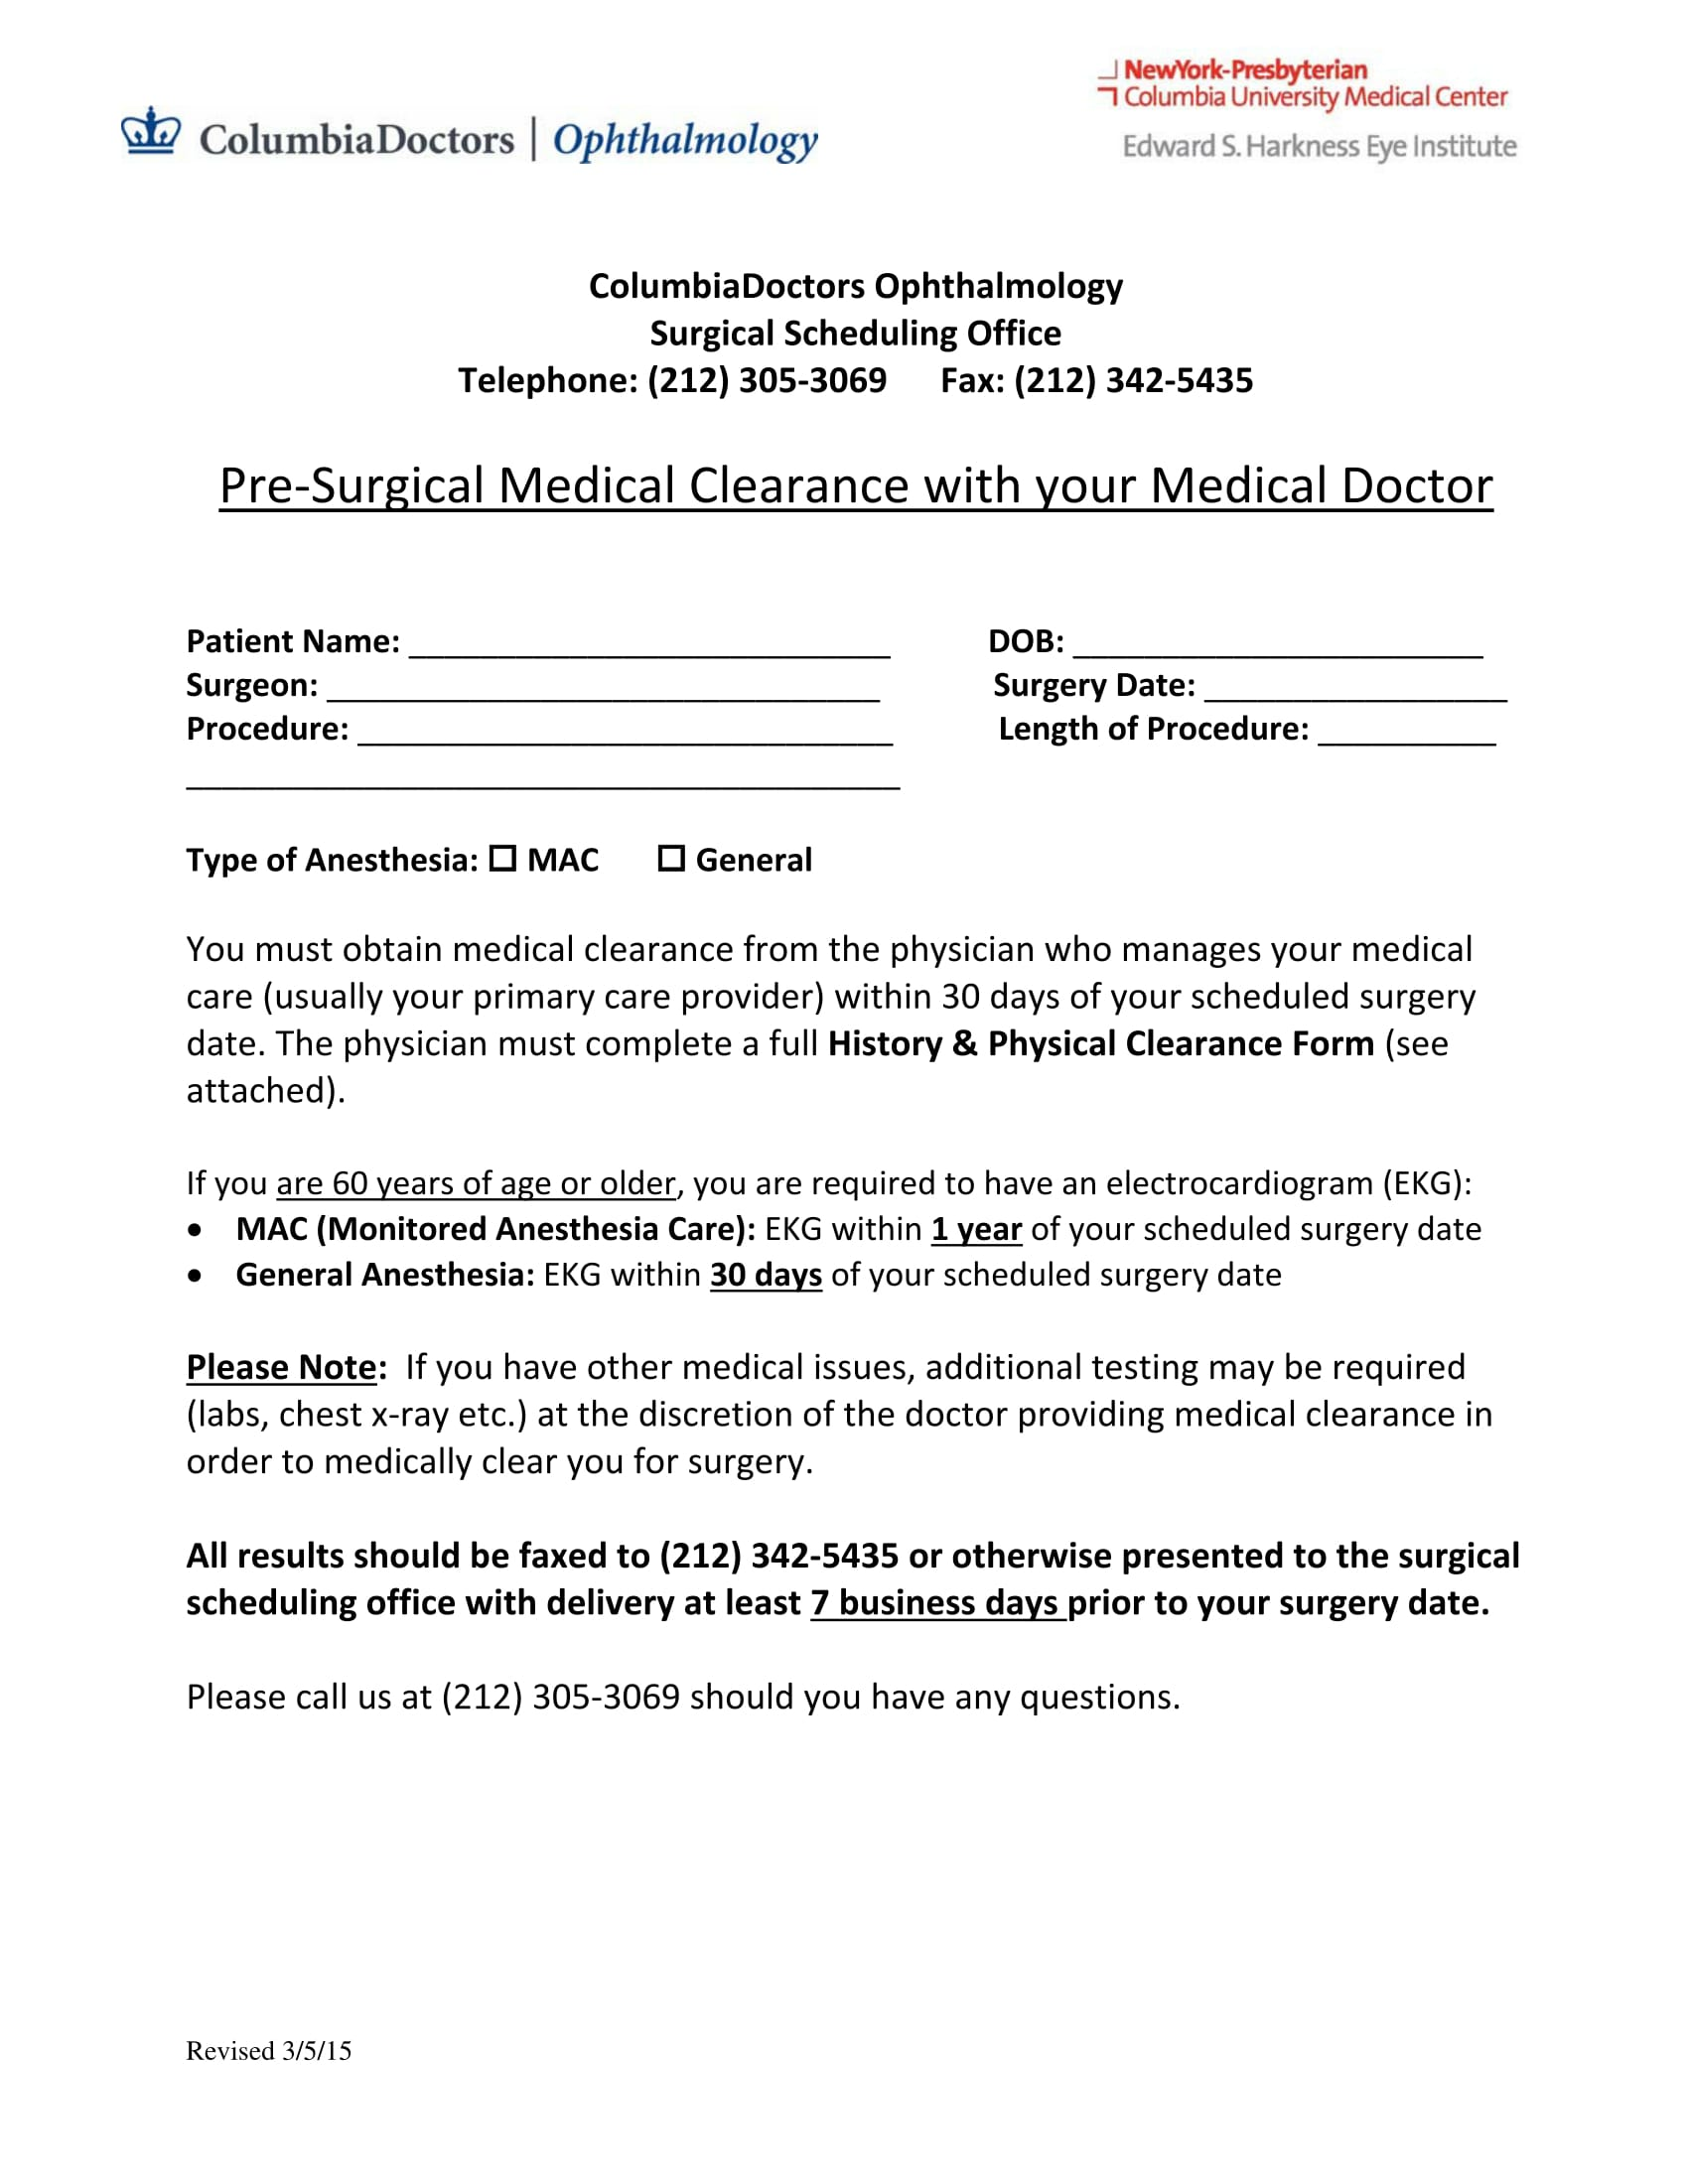 pre surgical medical clearance form 1